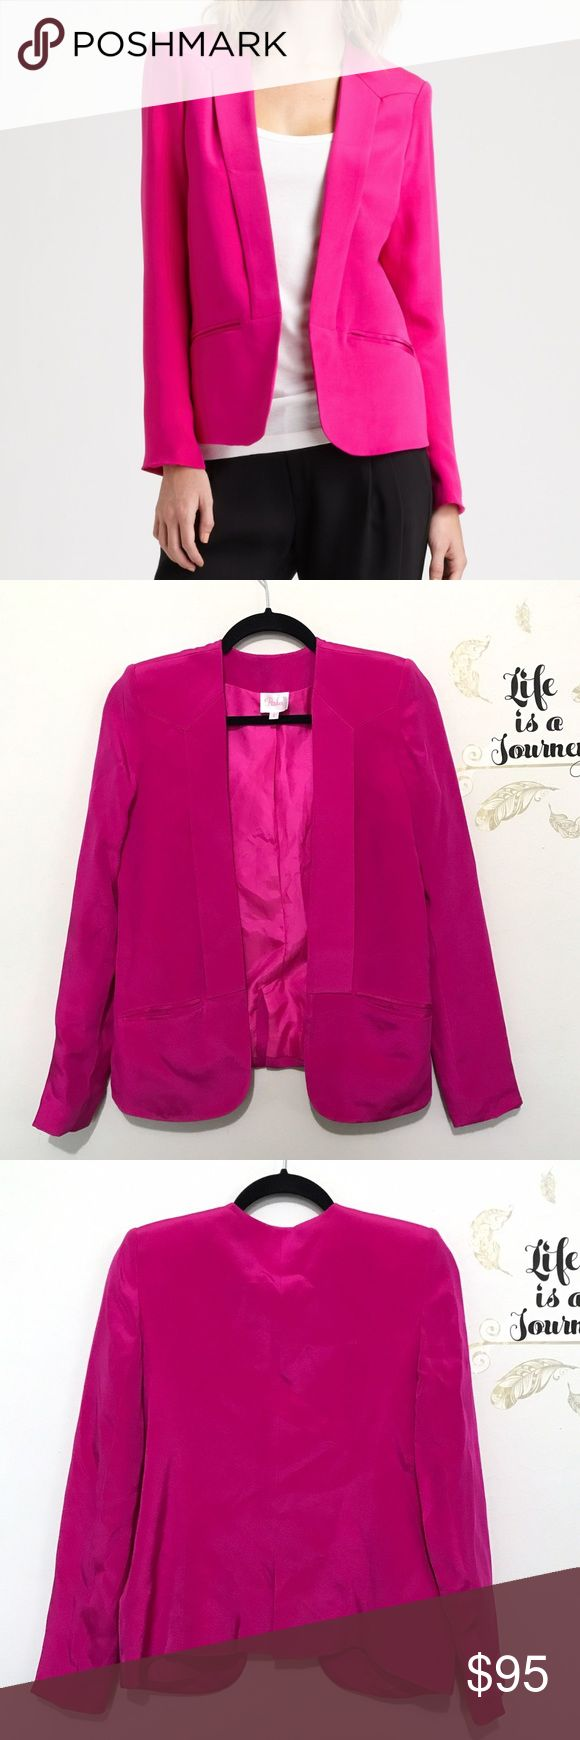 Parker Pink Silk Crepe Blazer Gorgeous hot pink/fuschia structured open blazer made with 100% silk! Pockets and shoulder pads complete the well made structure! Excellent condition, only flaw is a small mark on the upper part of one sleeve as pictured.  Pit to pit: 18.5 in Waist: 17.5 in Length, shoulder to hem: 24.5 in Sleeve, pit to cuff: 17.5 in Shoulder to shoulder, seam to seam: 15 in Parker Jackets & Coats Blazers